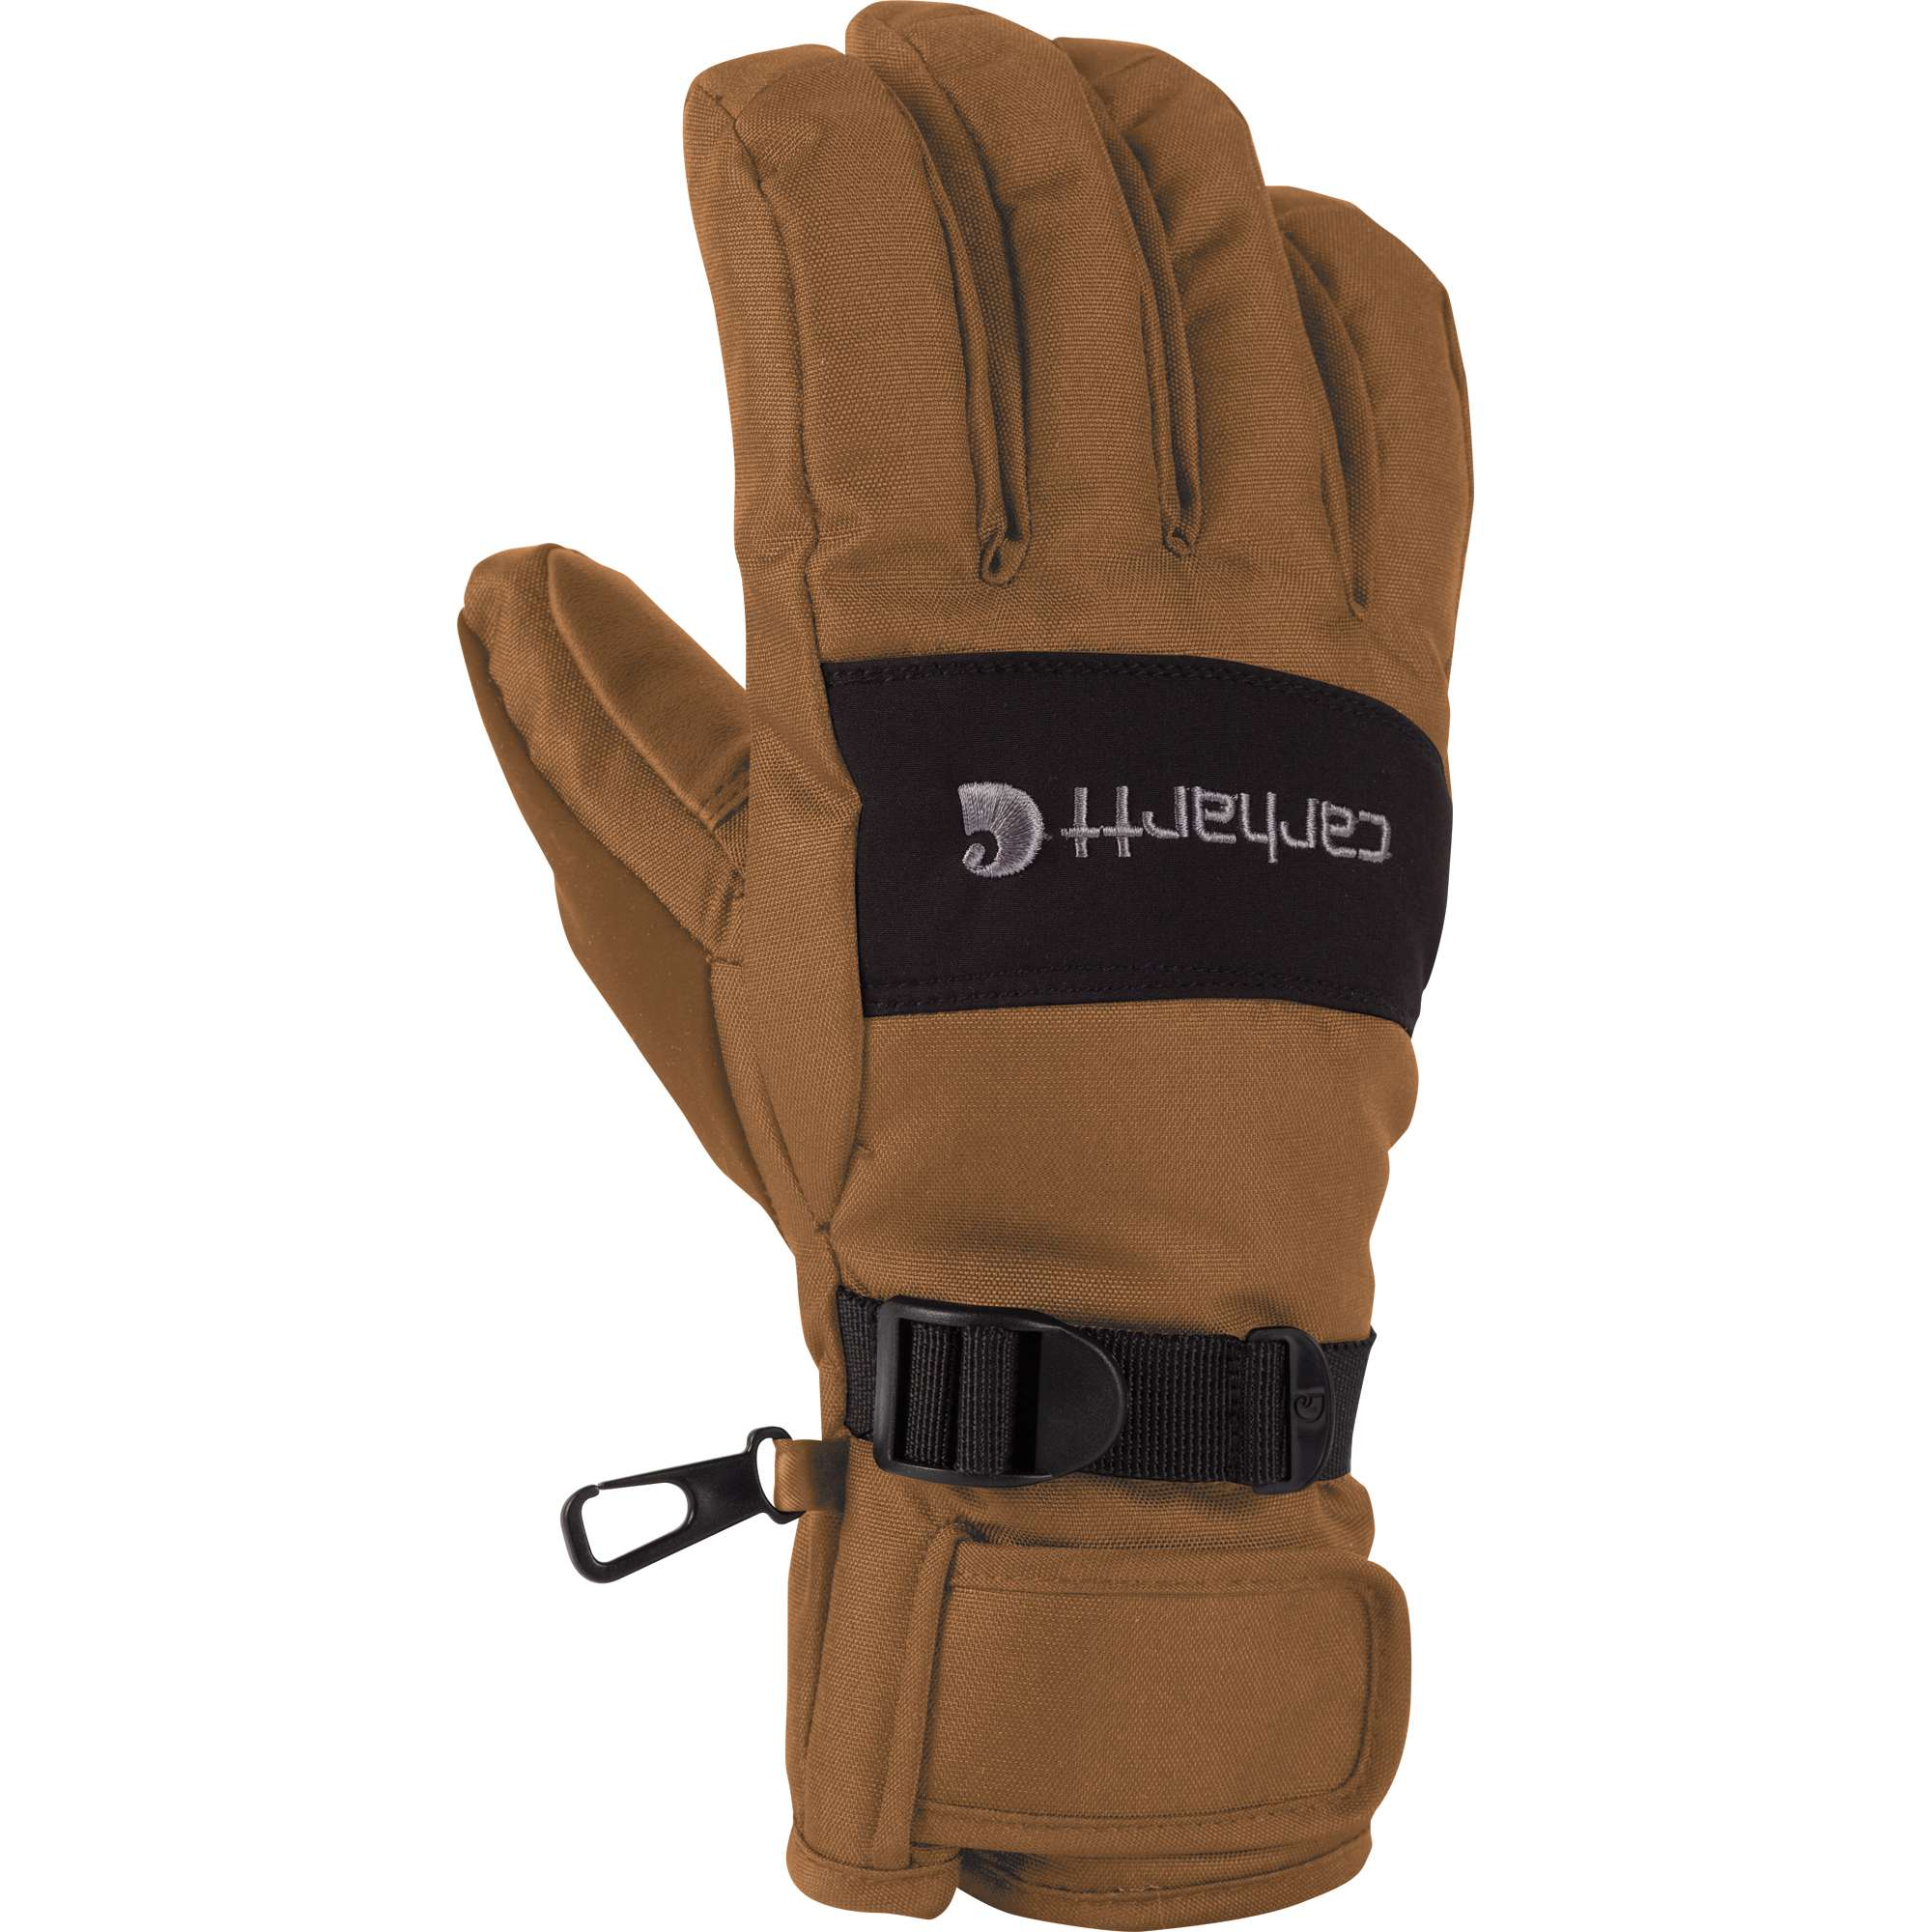 photo: Carhartt WB Glove insulated glove/mitten